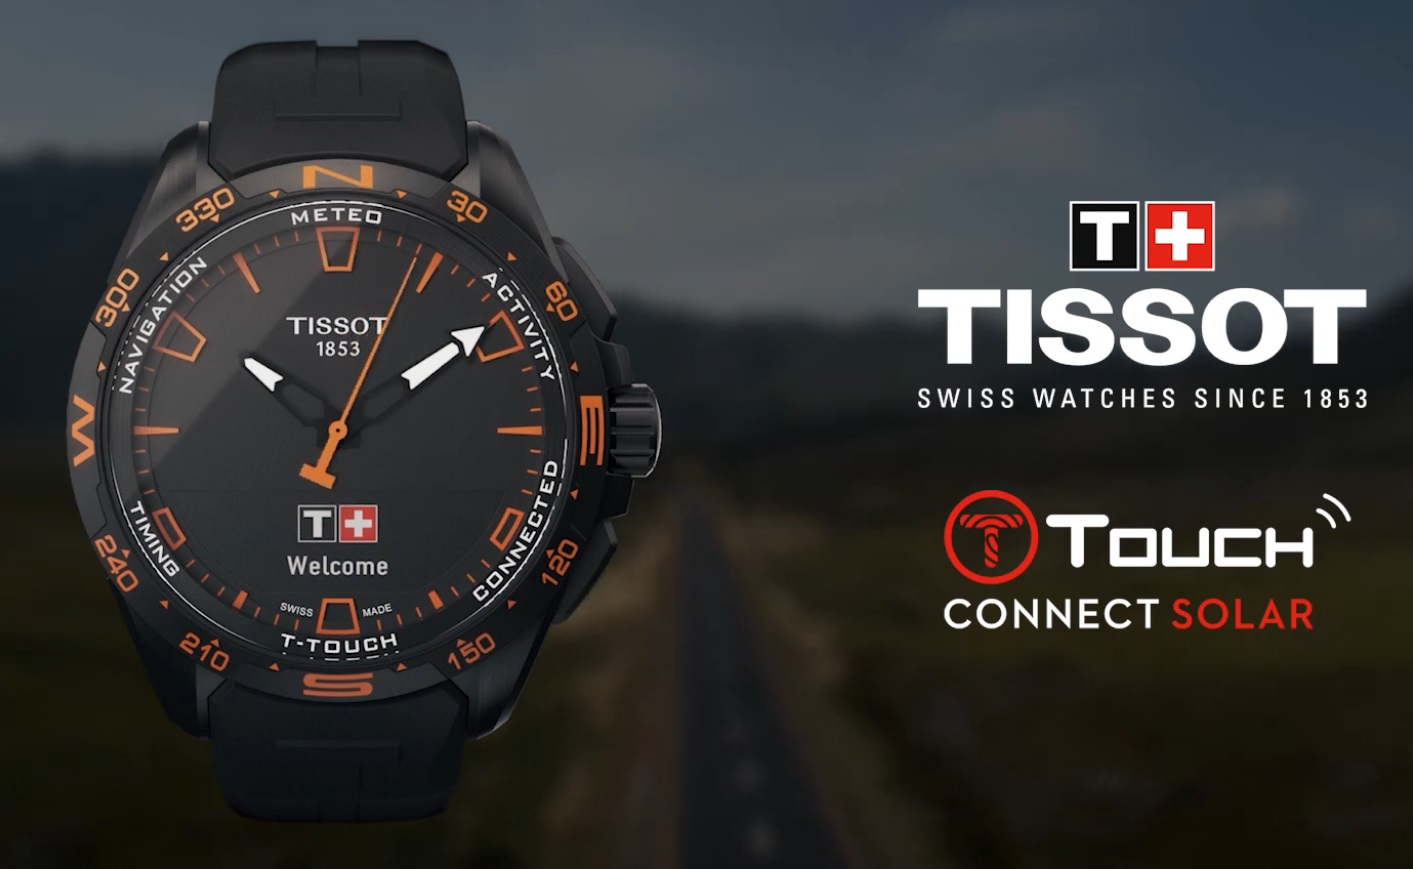 TISSOT T-TOUCH CONNECT SOLAR SMARTWATCH - ĐỒNG HỒ THÔNG MINH 2020